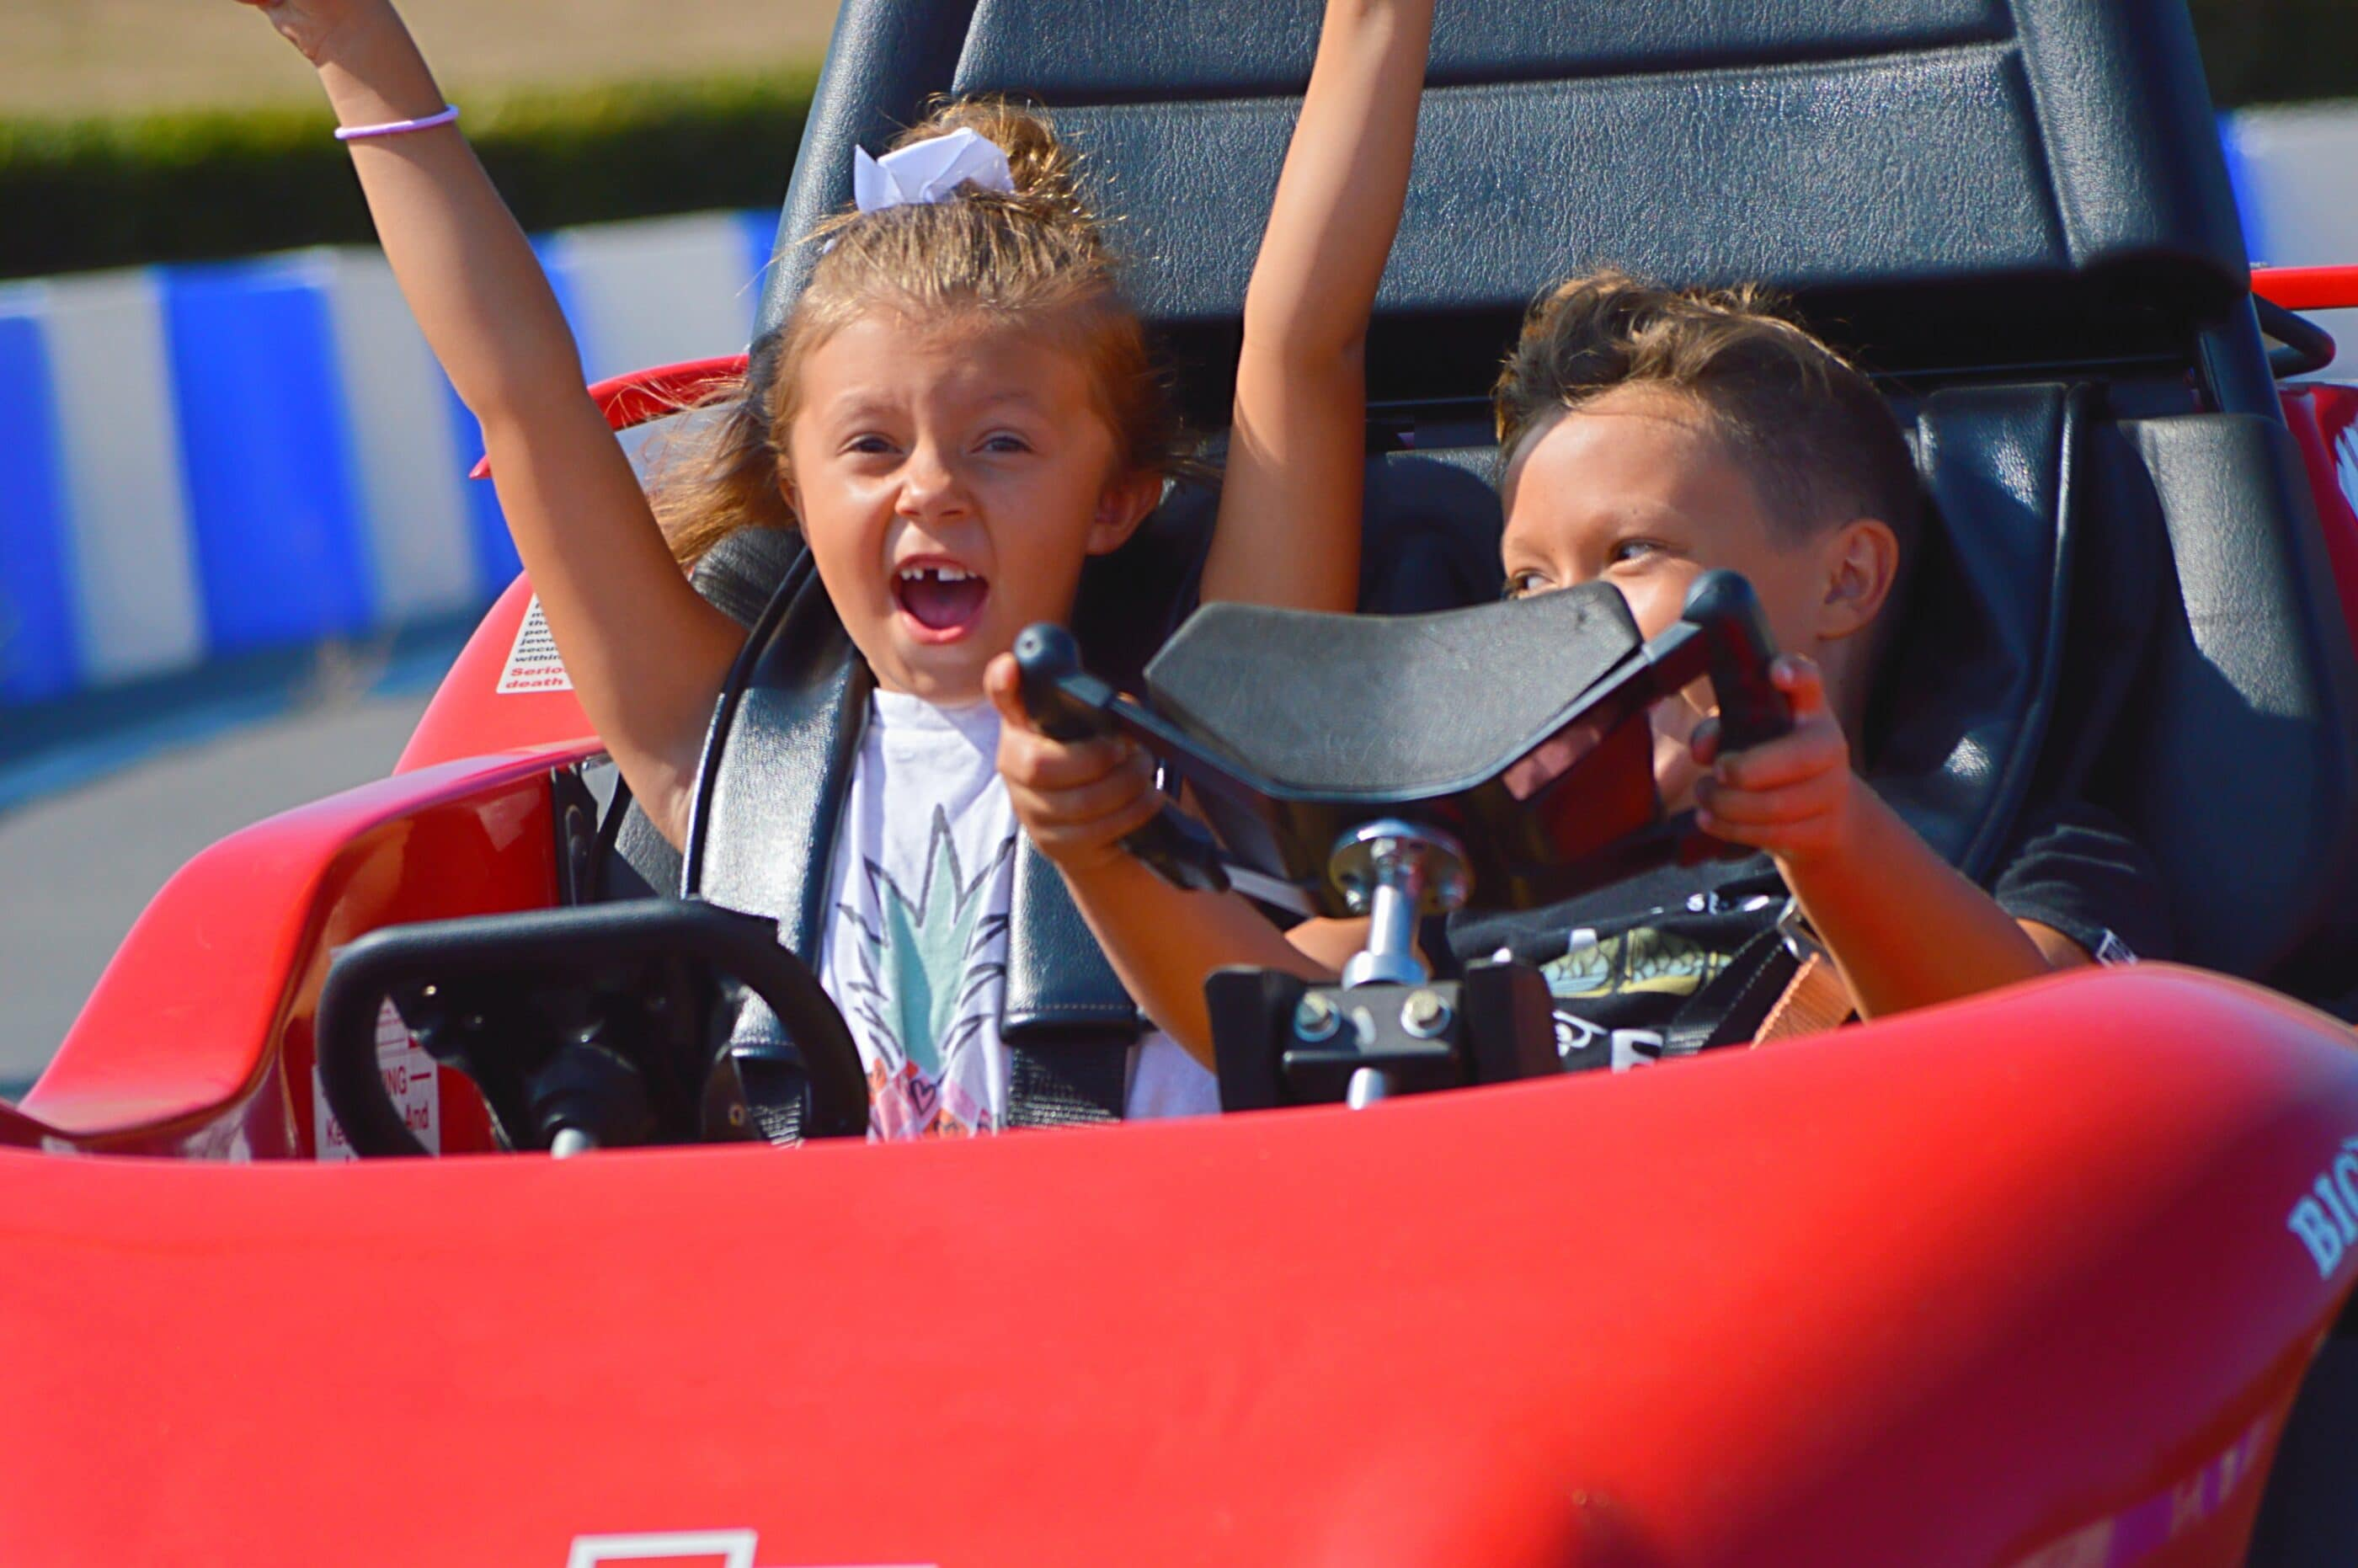 Two girls drive the Go Karts at Belmont Park San Diego